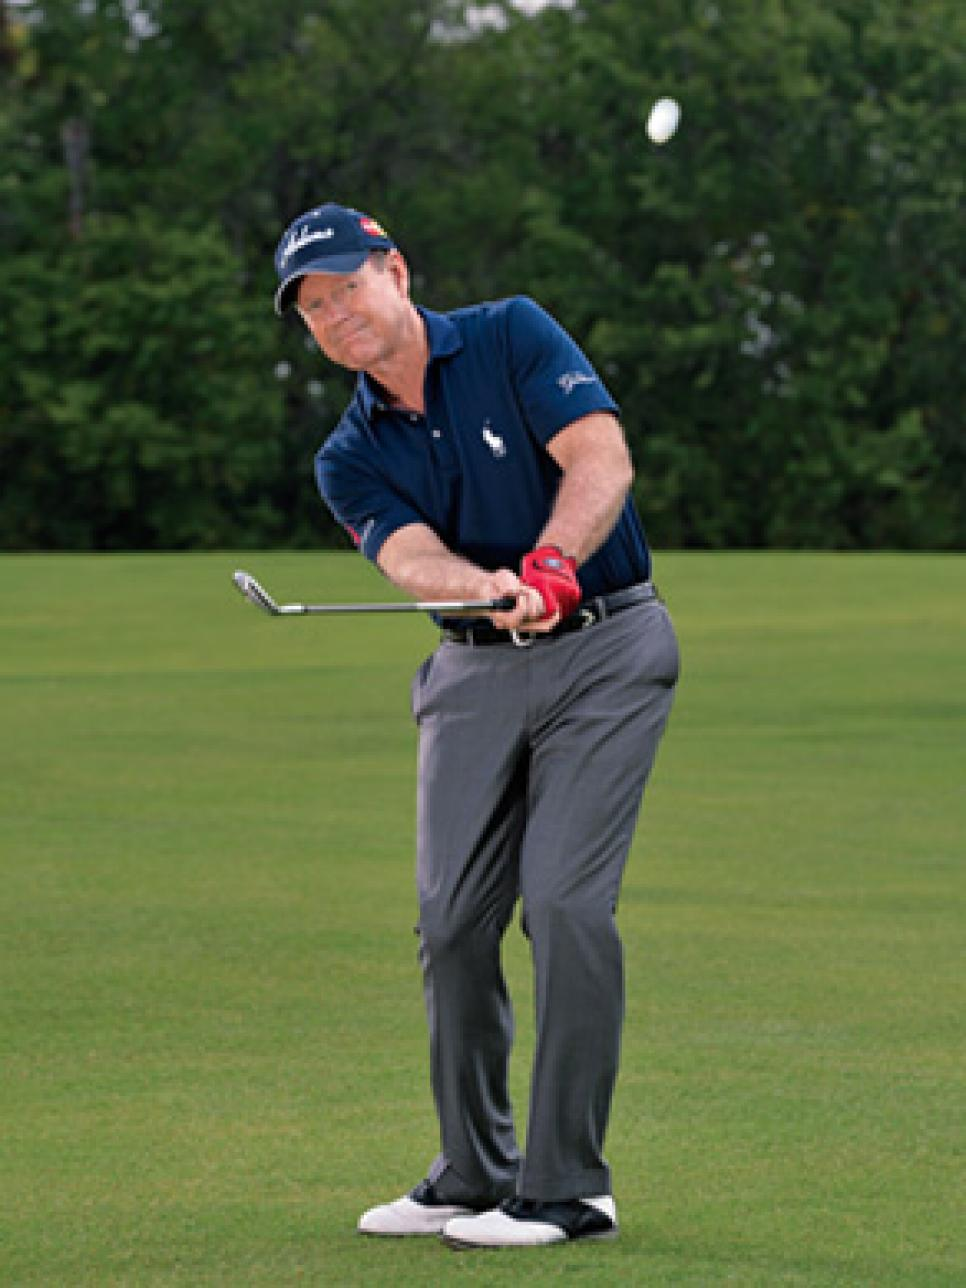 instruction-2015-02-inar01-tom-watson-half-wedges-300.jpg